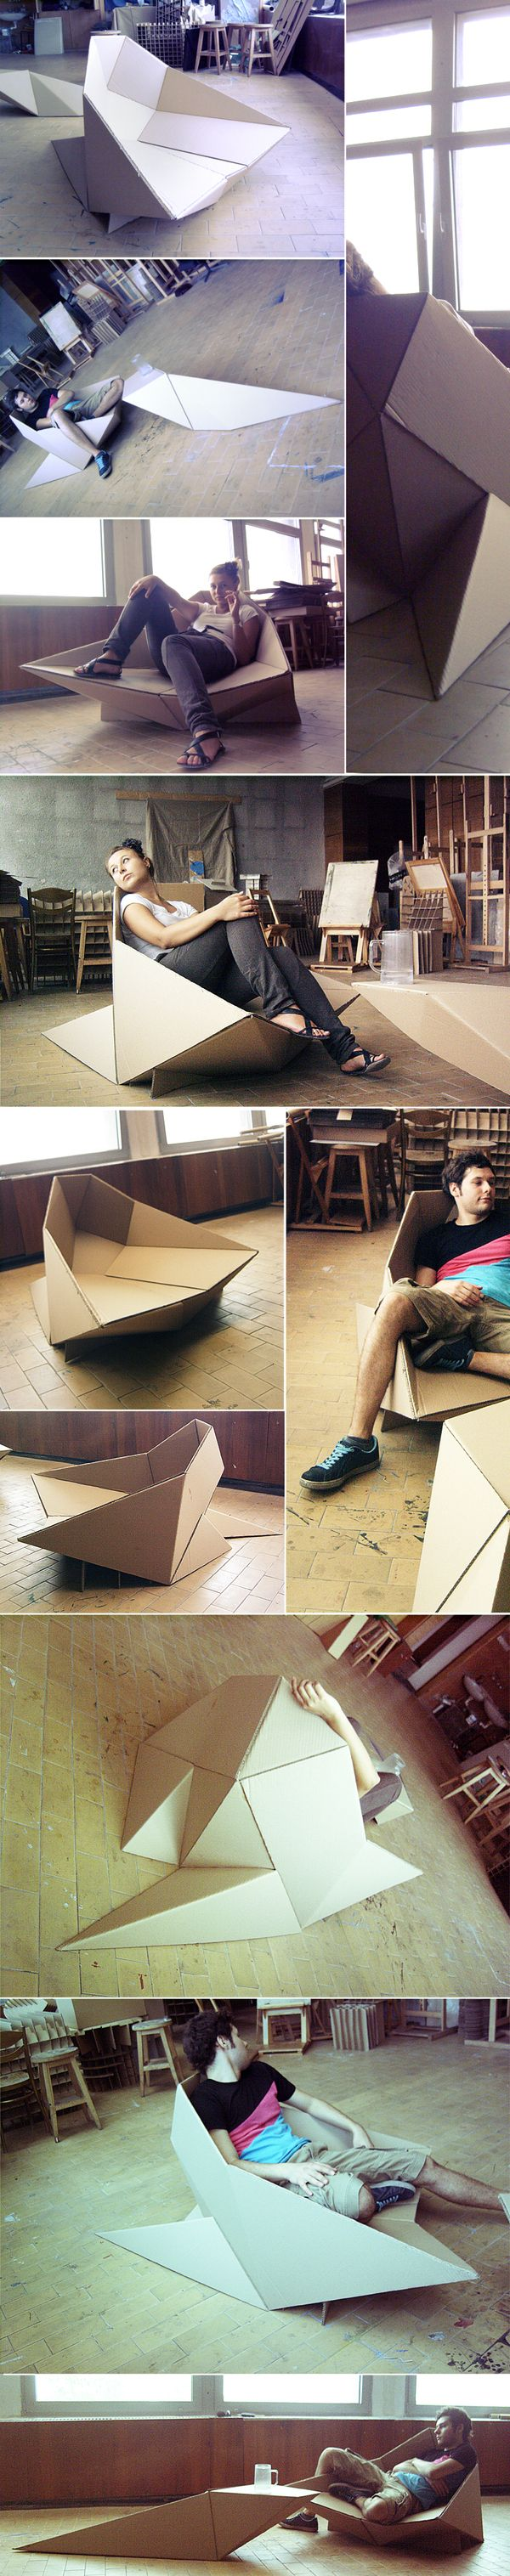 Cardboard chair - such an excellent idea for an exhibition of some sort.  I have seen cardboard stools used at a film festival once before and found it incredible the way in which they transformed a simple event space.  They create such a dramatic effect, hold so much weight and are easy to construct and compact.